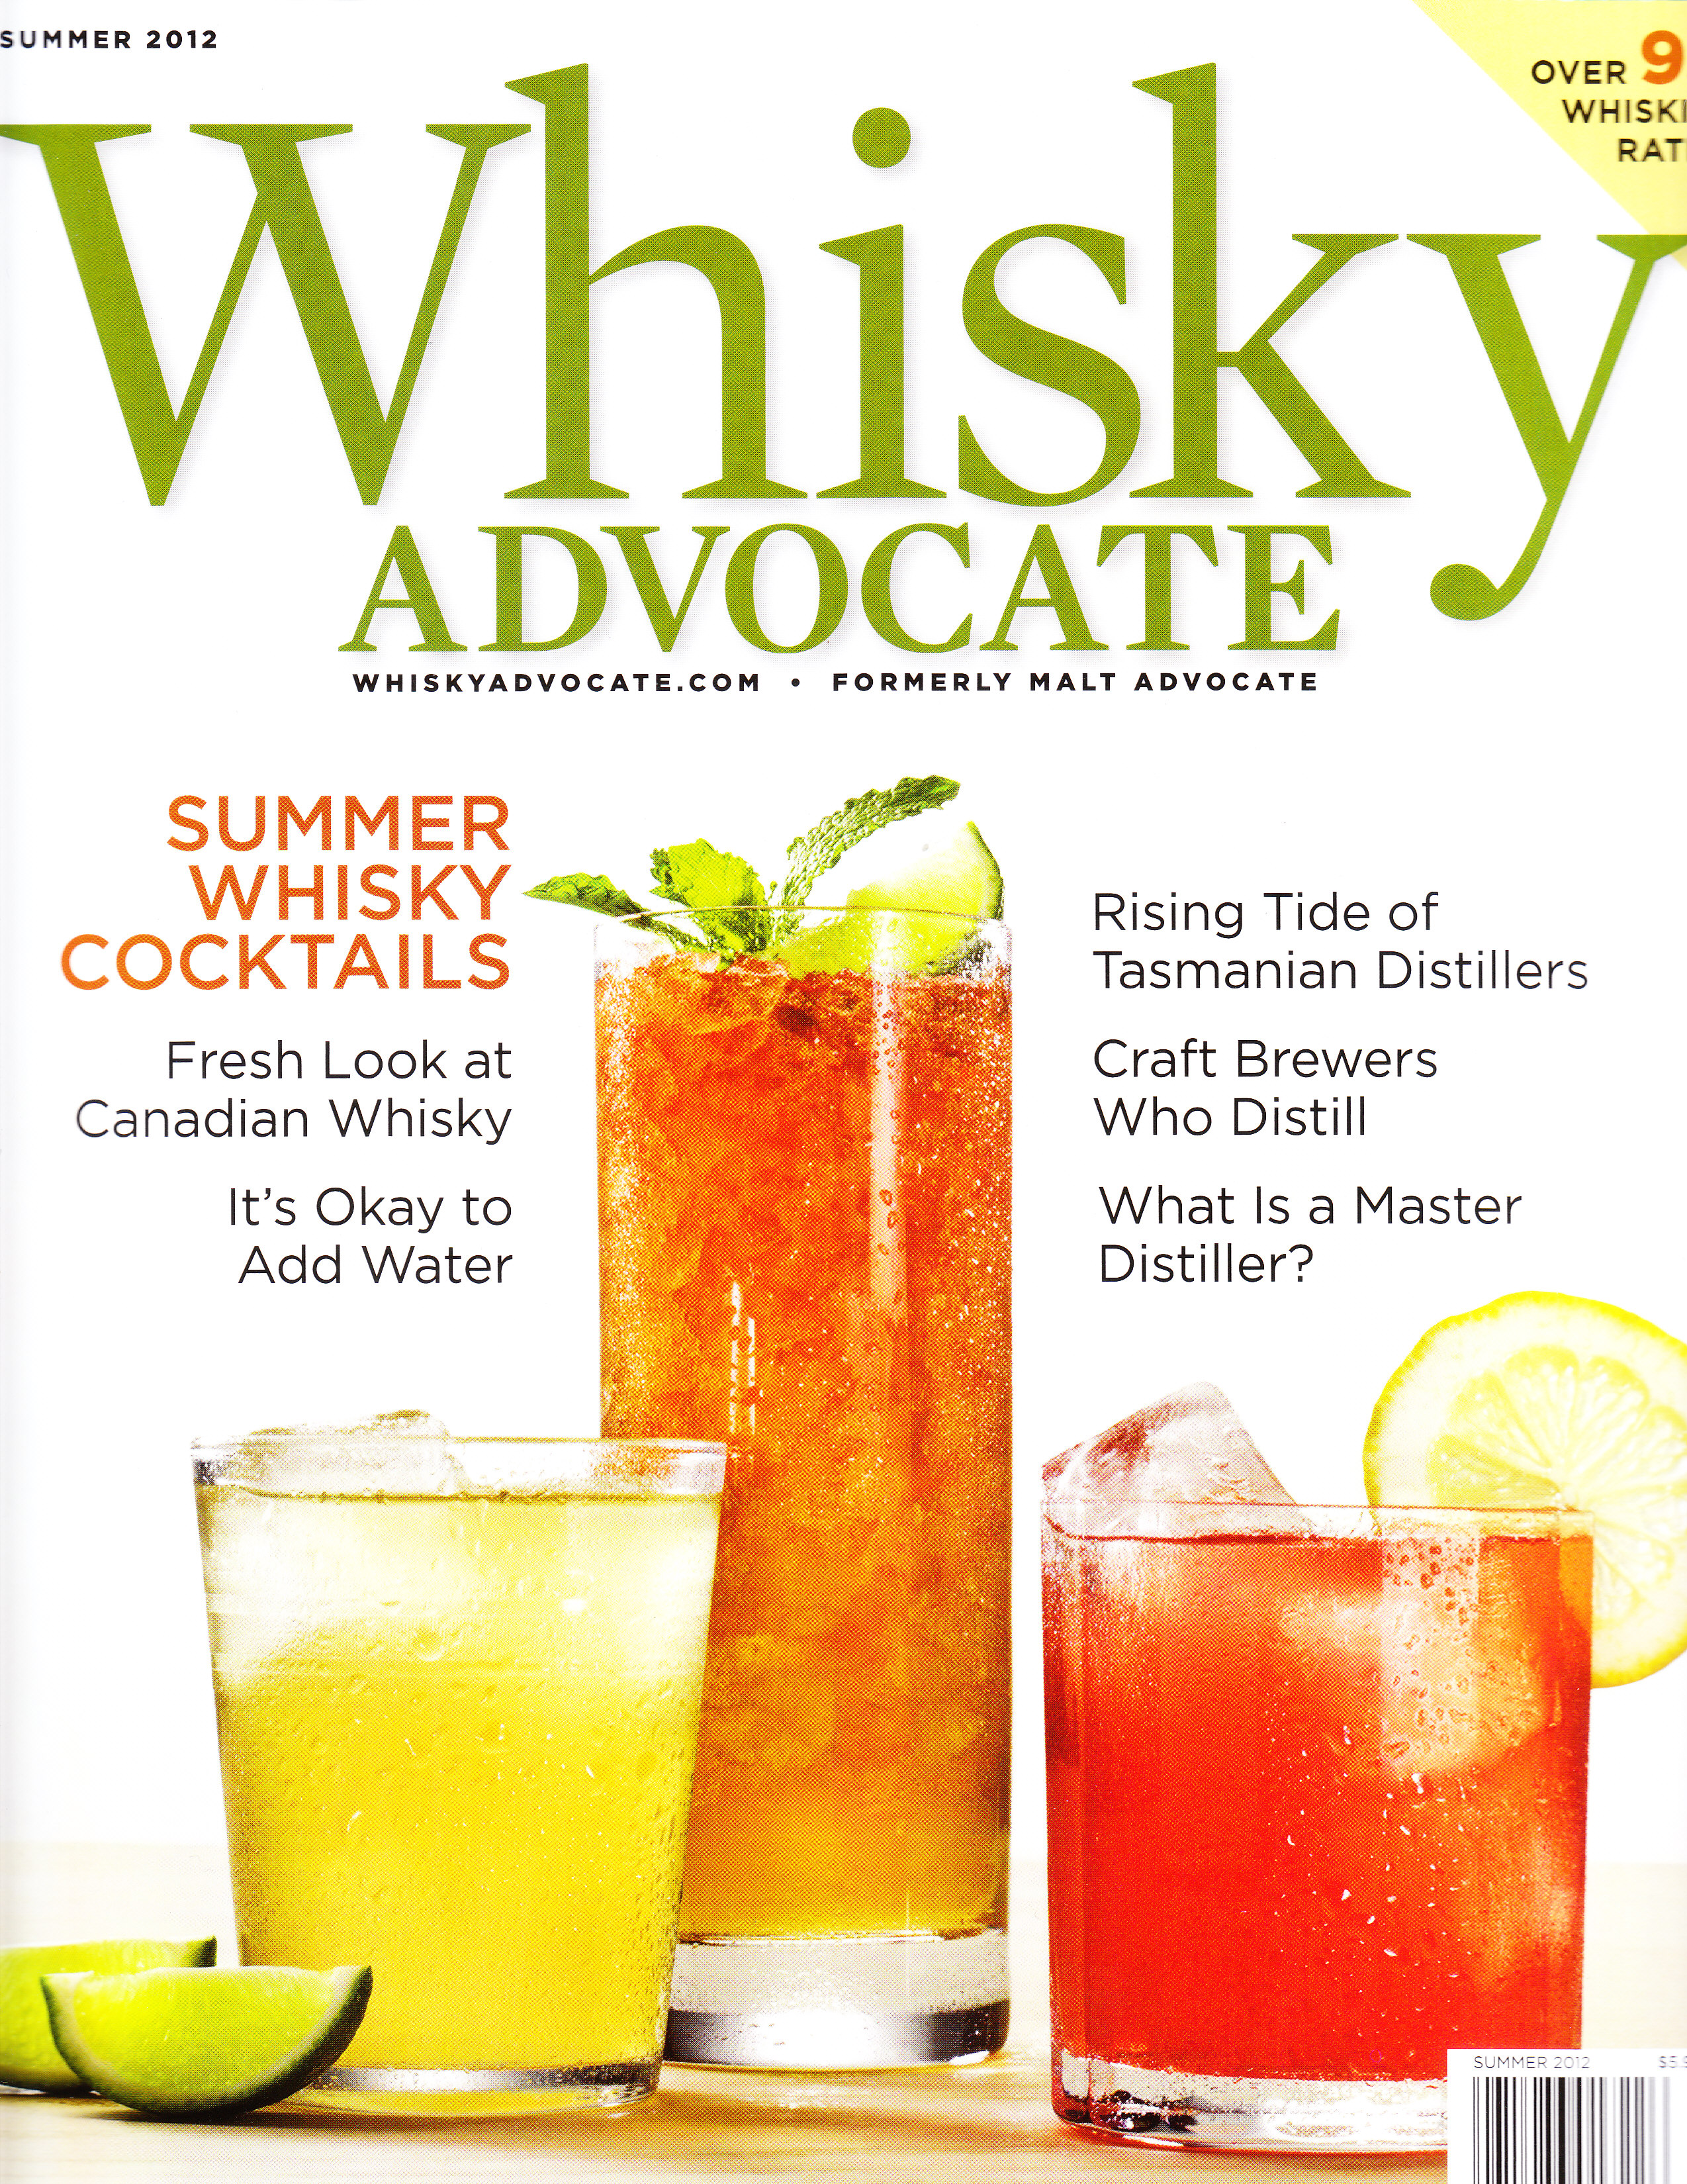 Summer Whisky Cocktails In Whisky Advocate Magazine Alcademics